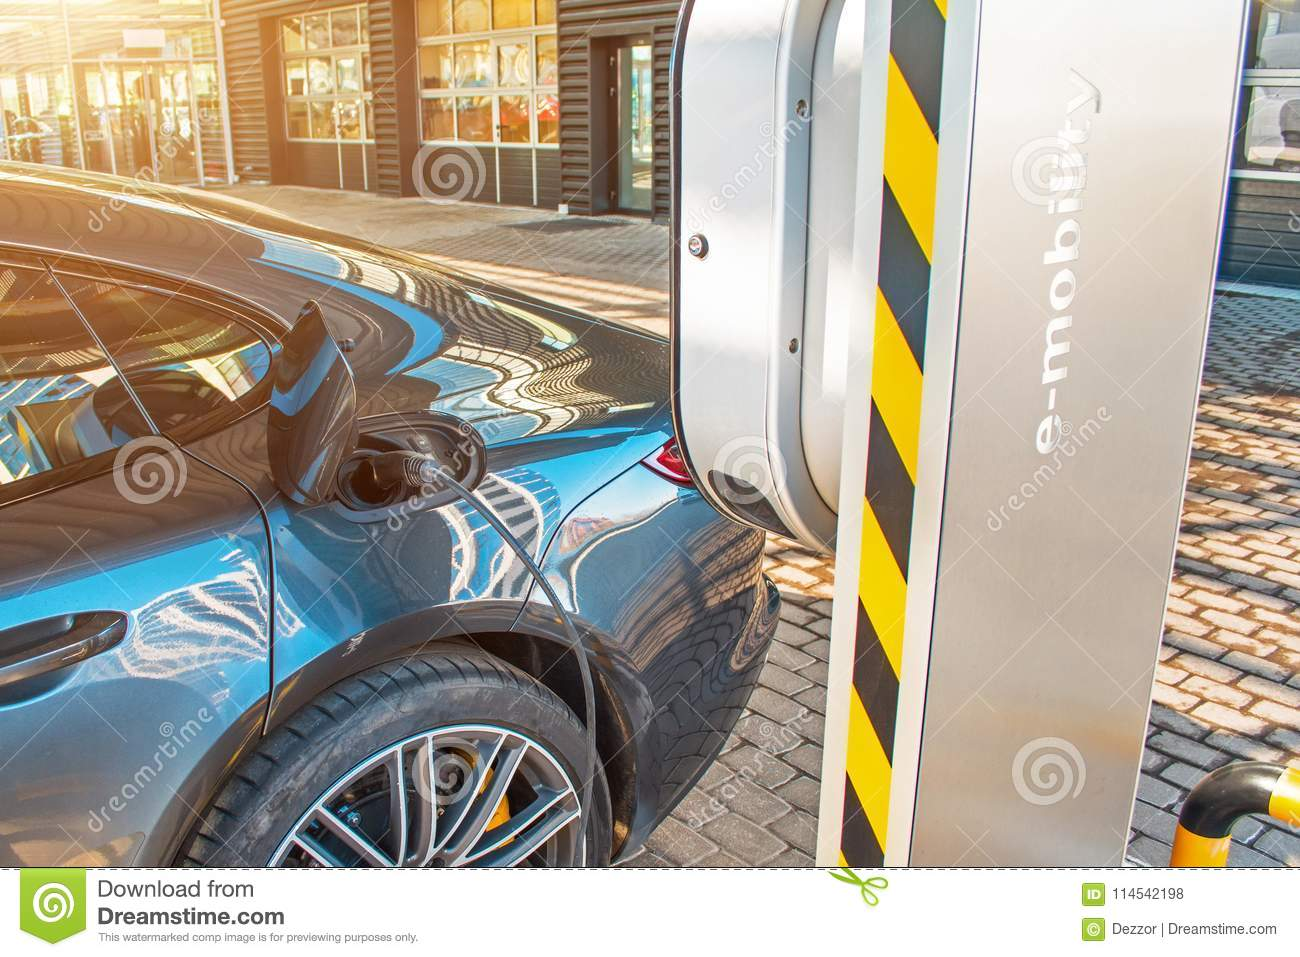 Automobile refueling for electric cars e-mobility in the background e-car, wheel. Charging e-car, the fuel cell battery door is op